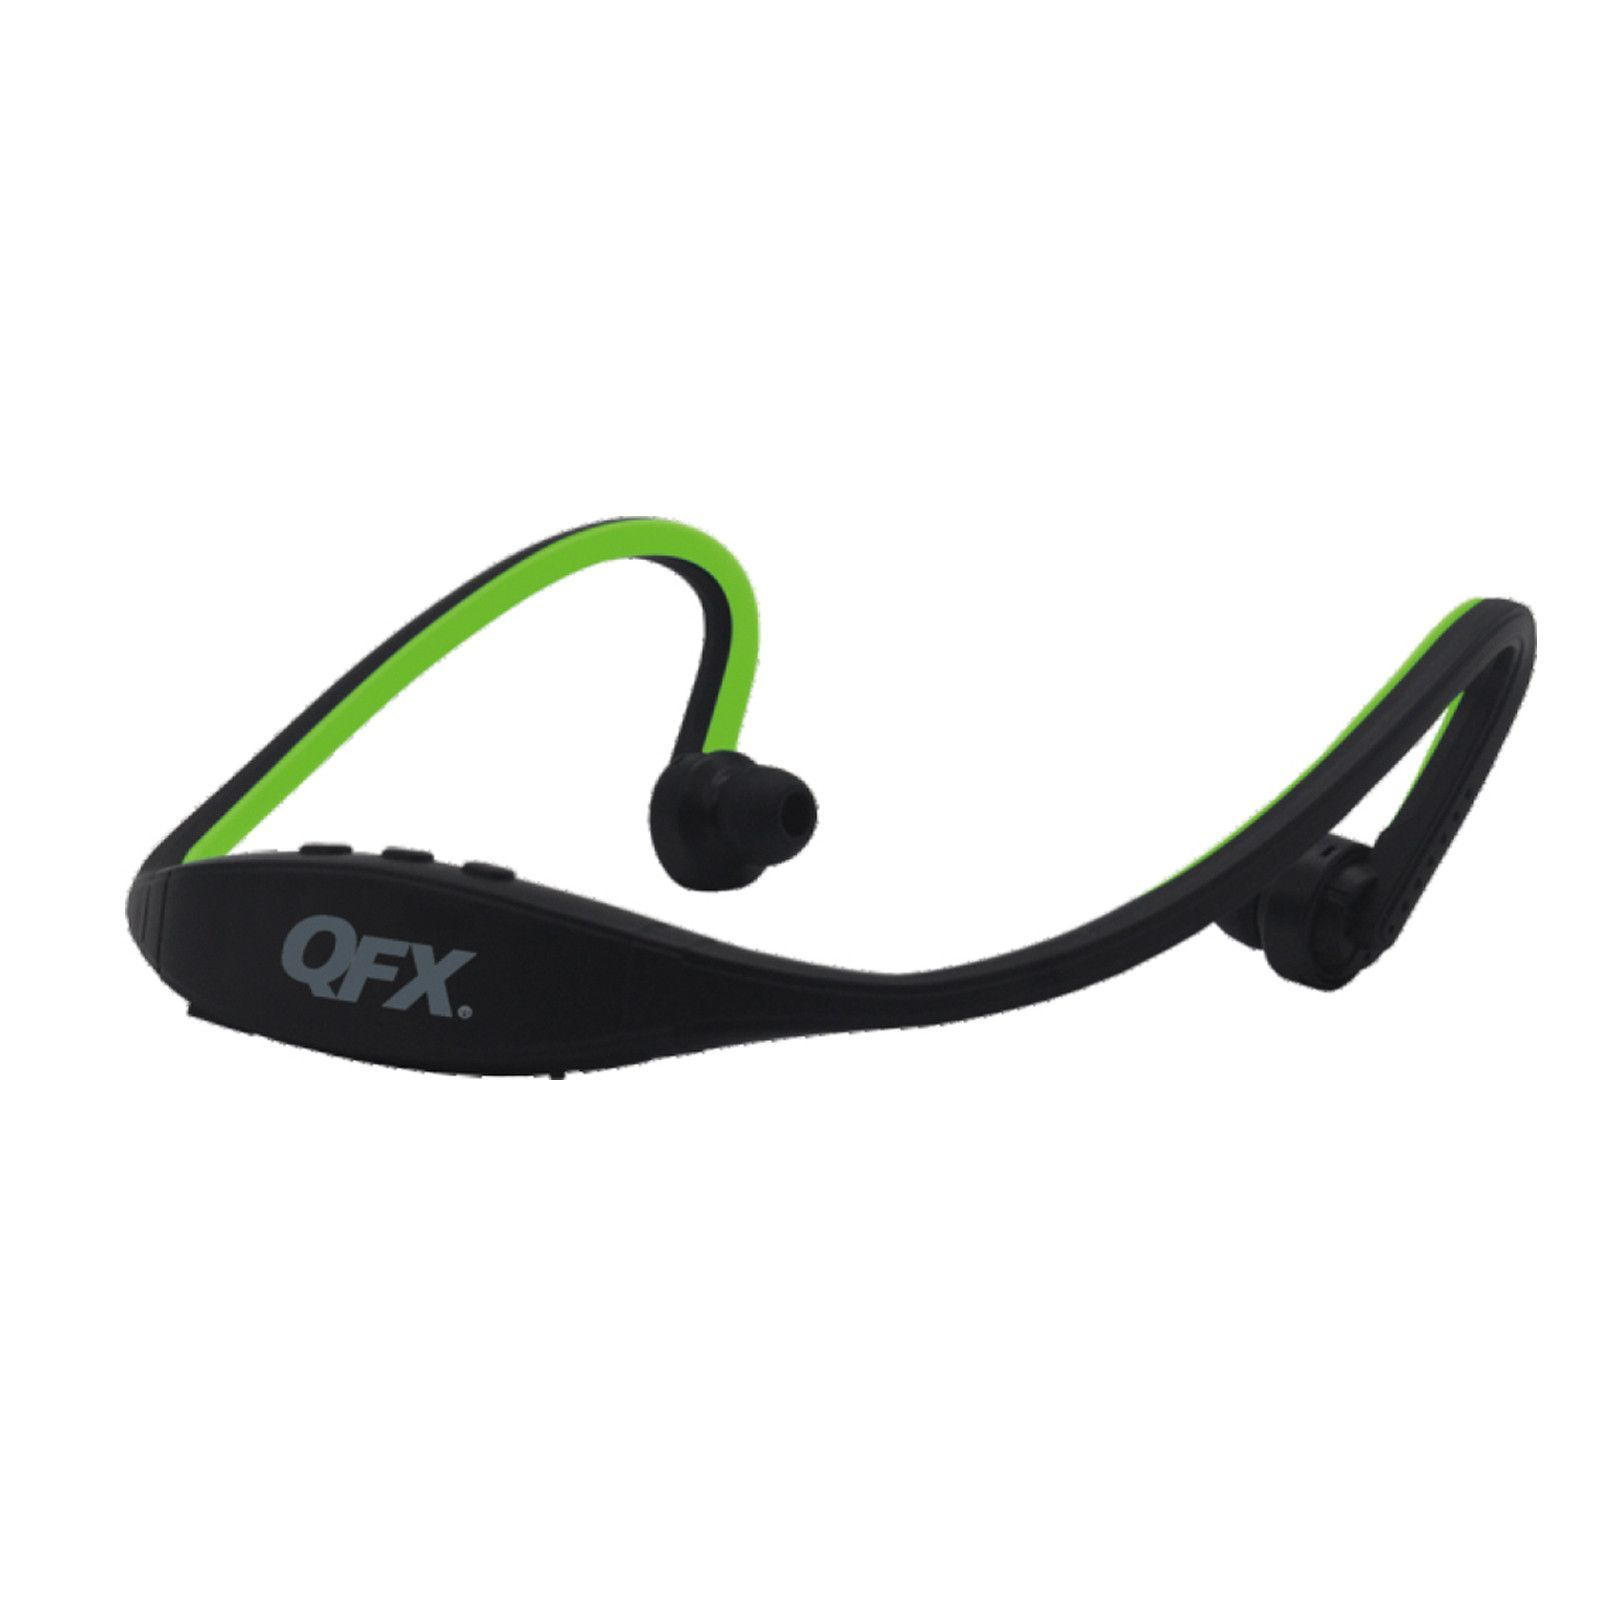 Qfx Sport Bluetooth Headphones With Microphone Green Products Headset